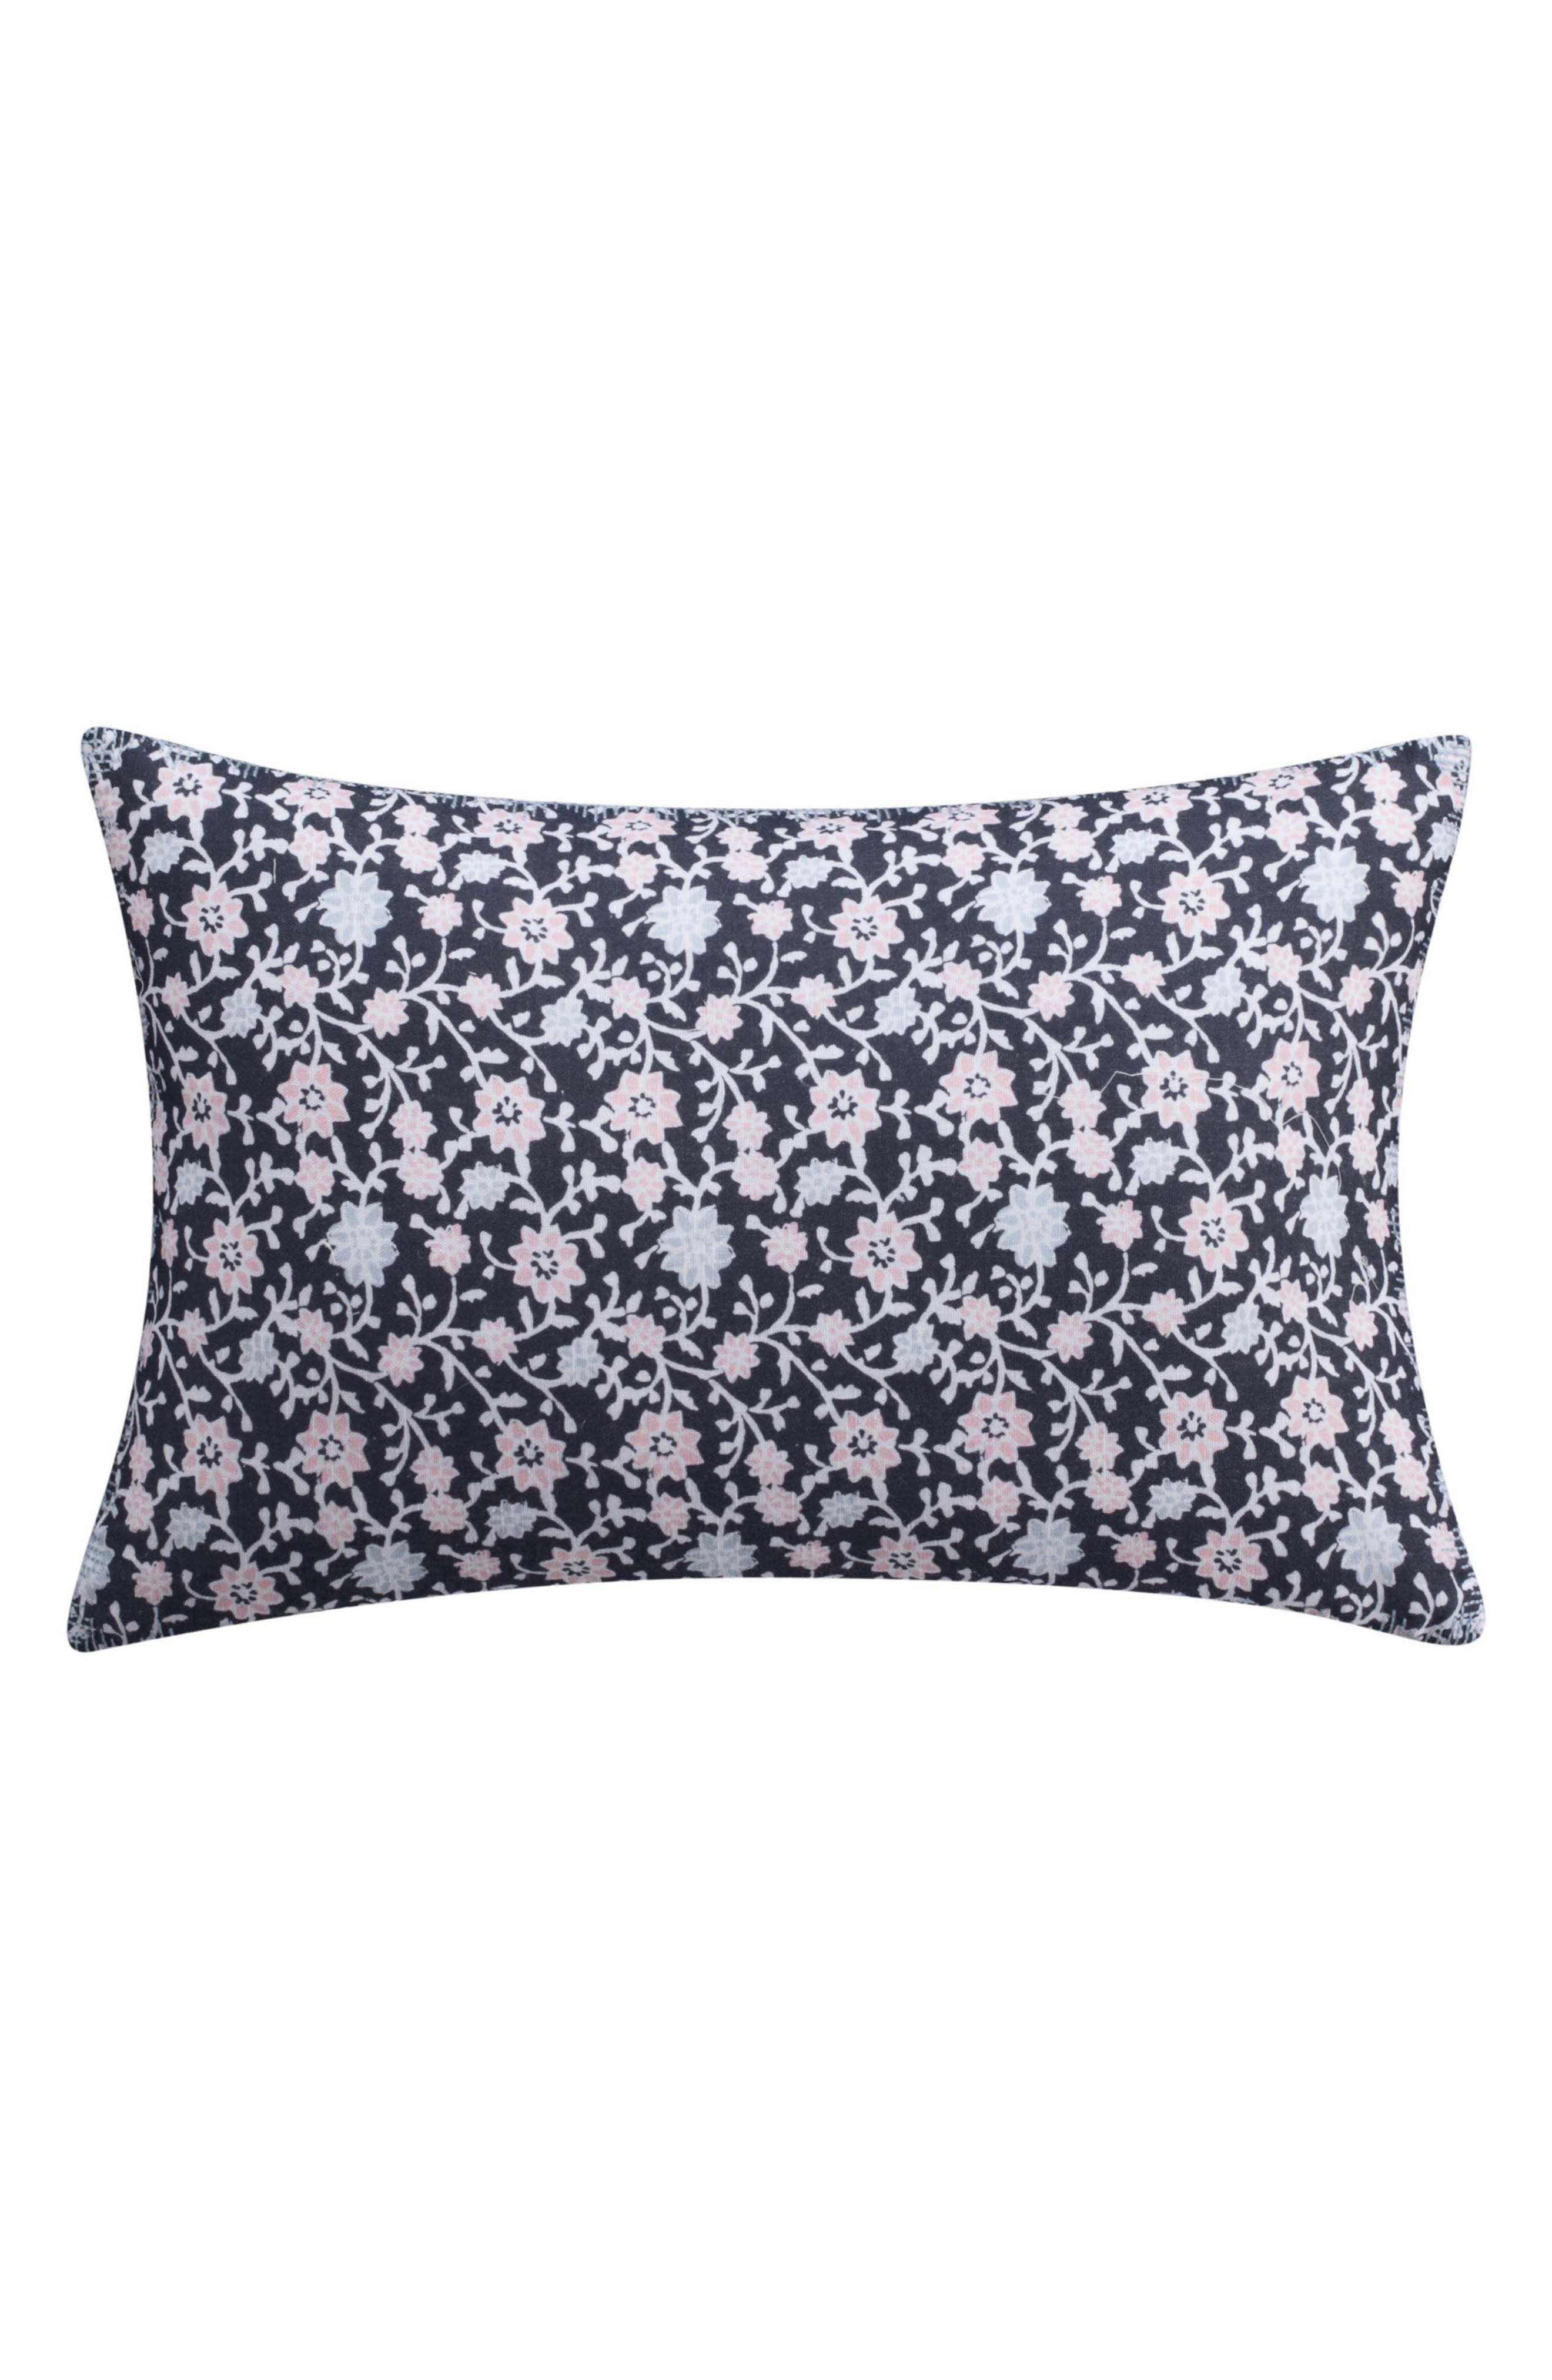 Alternate Image 1 Selected - cupcakes and cashmere Floral Print Accent Pillow